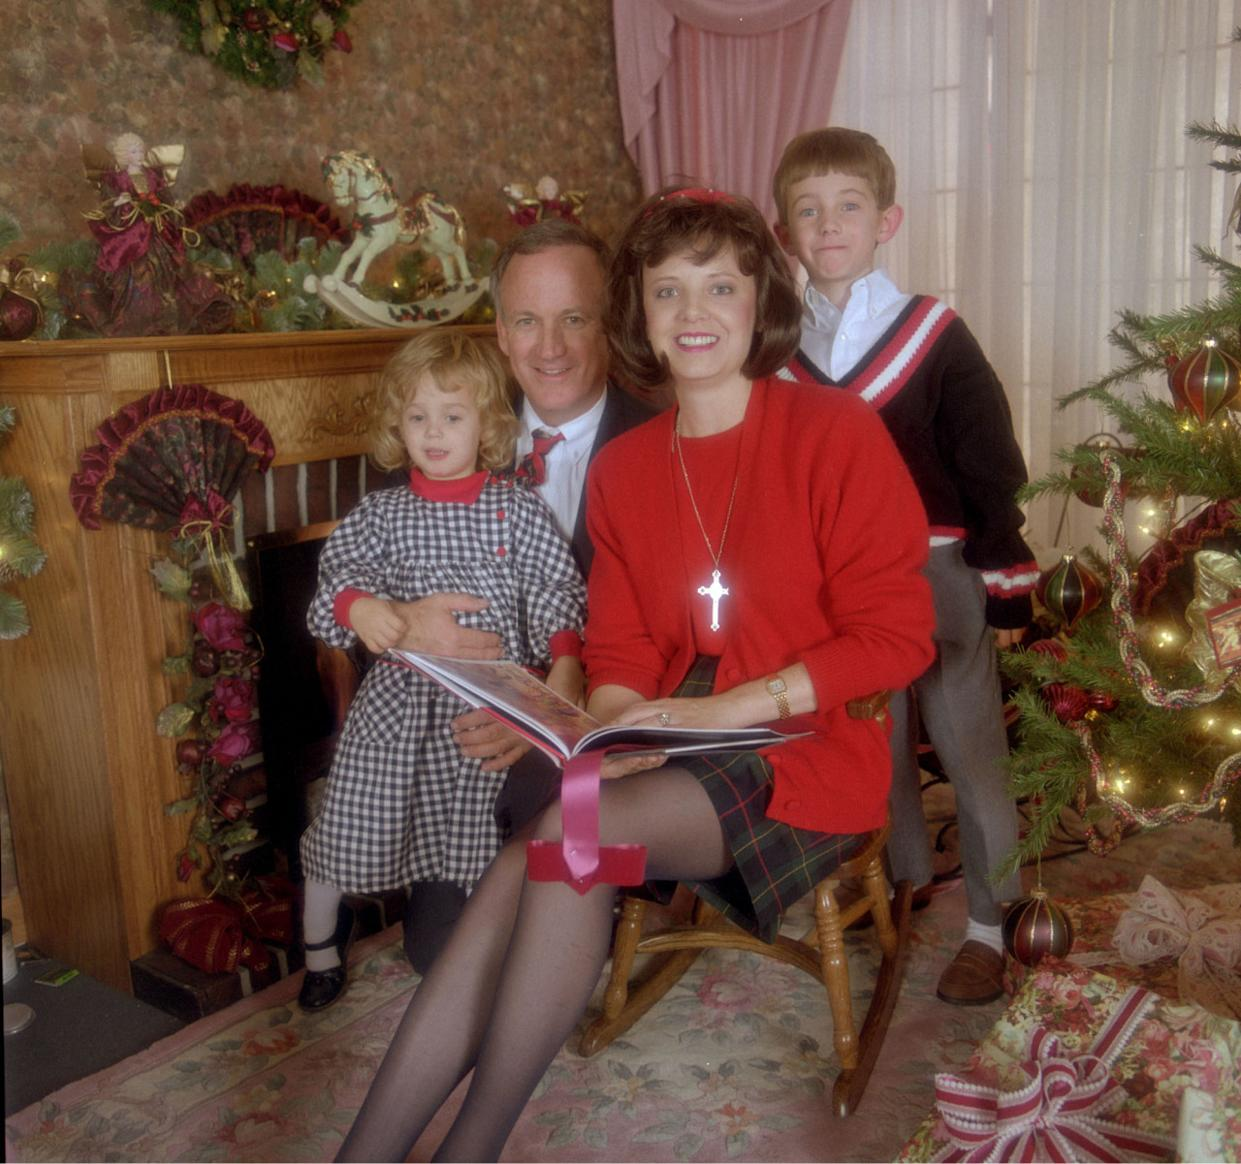 How JonBenet Ramsey's Dad Protected His Son From Murder